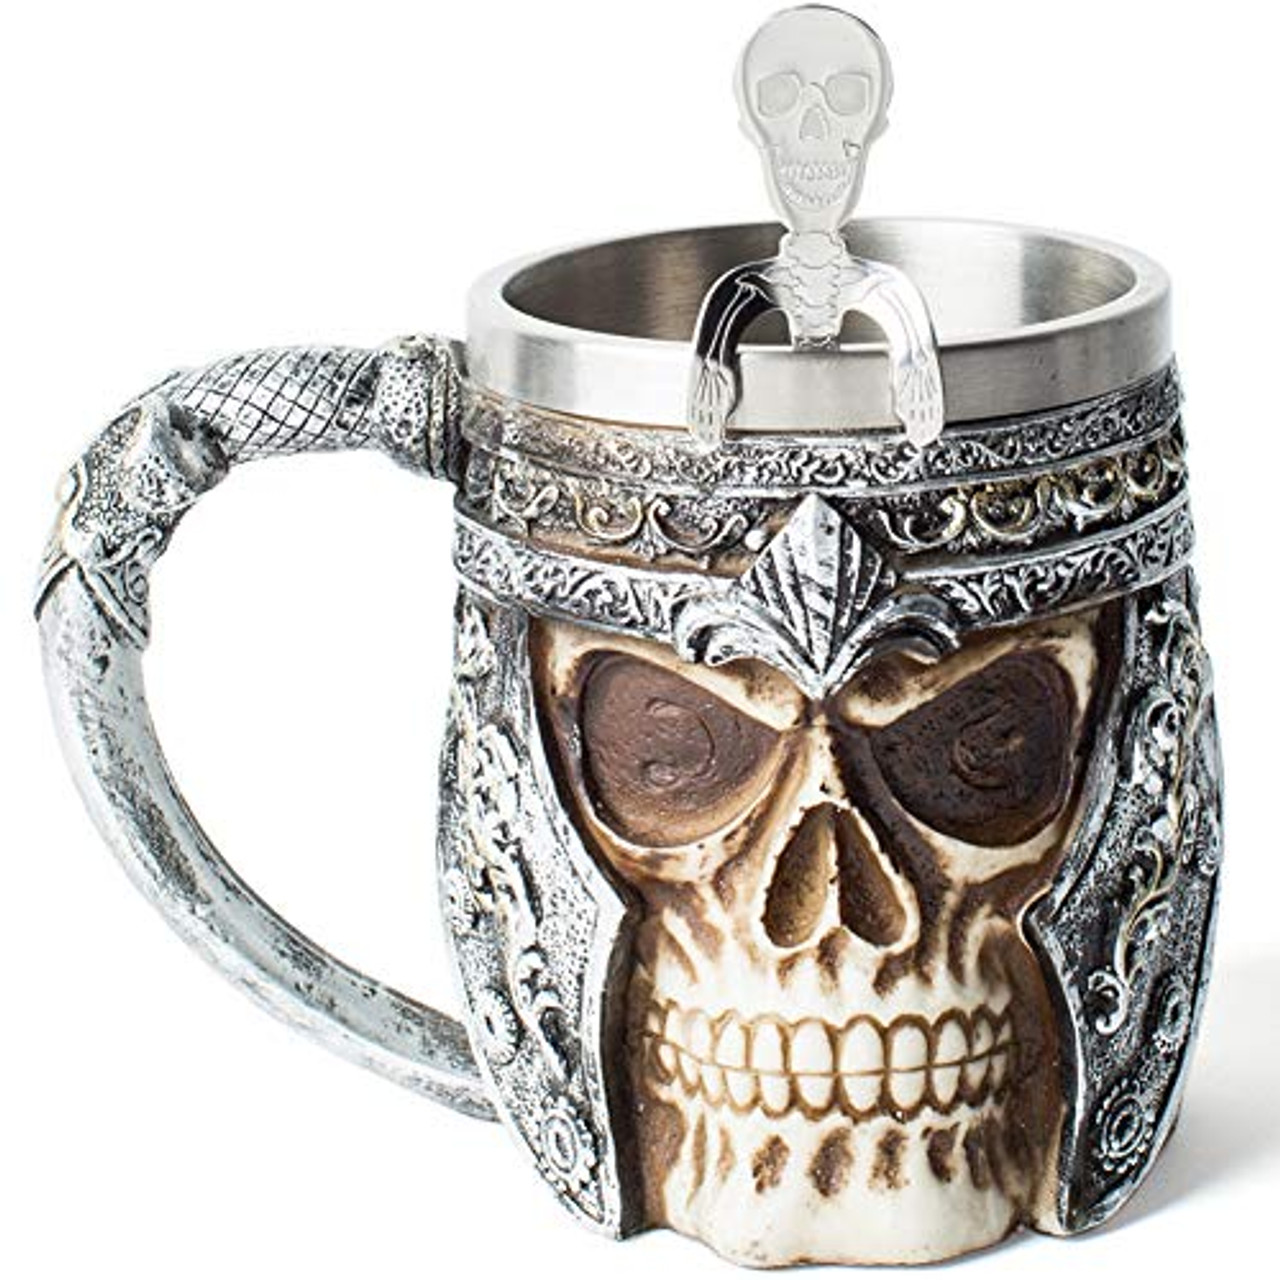 Viking Skull Drinkware Coffee Cup Beer Mug Gifts For Men Stainless Steel Mug Viking Drinking Horn Bar Cup Nordic Gifts For Halloween Christmas And Home Decor Toyboxtech